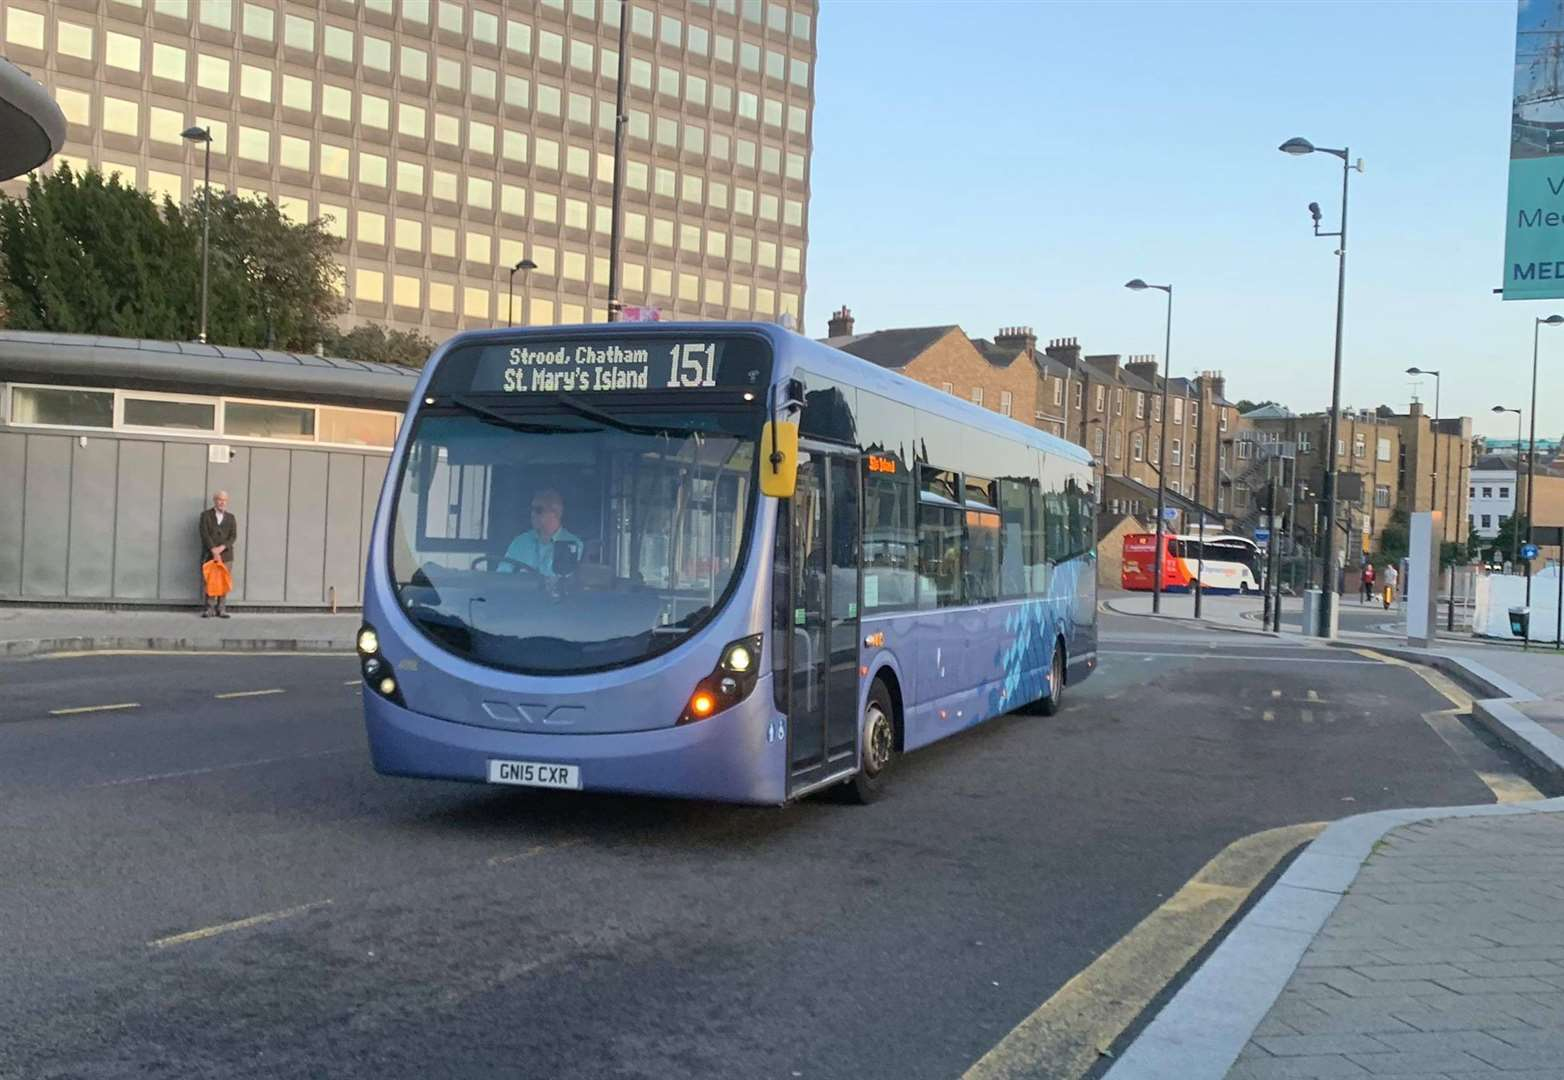 The 151 bus picks up passengers in Chatham(15711406)